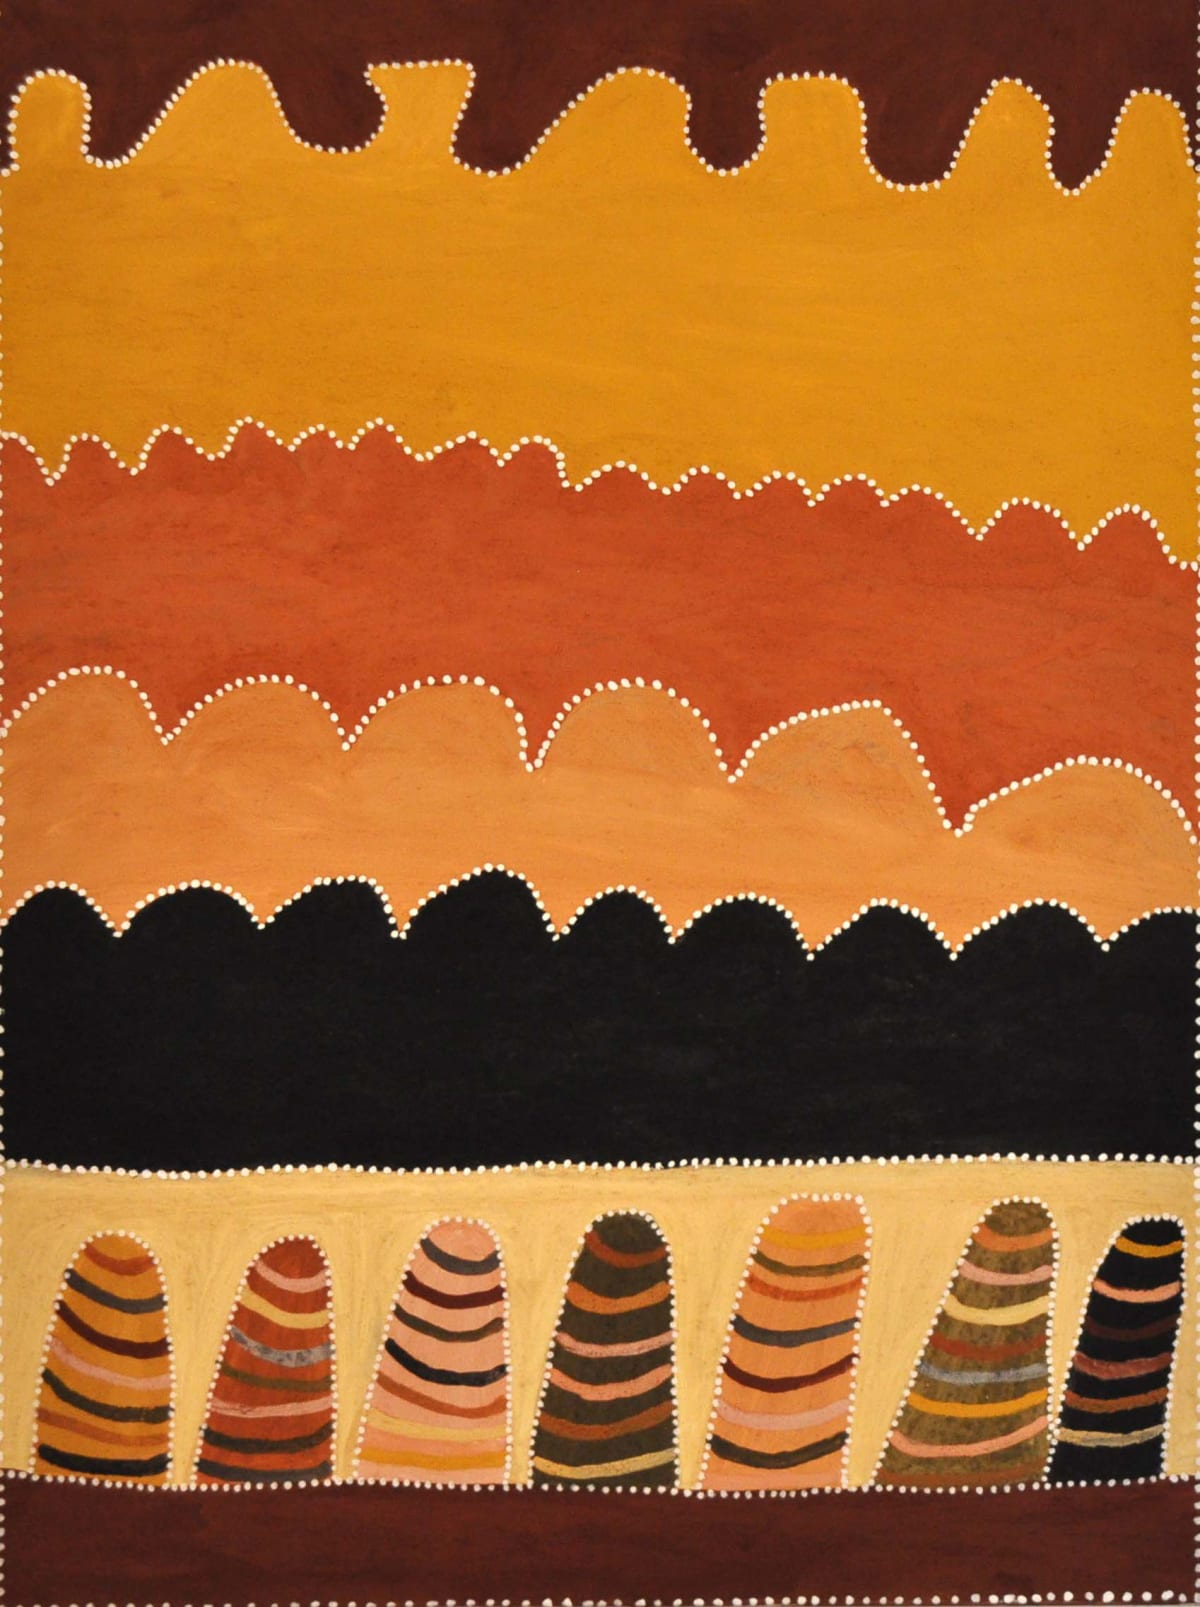 Betty Carrington Gowarrin natural ochre and pigments on canvas 120 x 90 cm